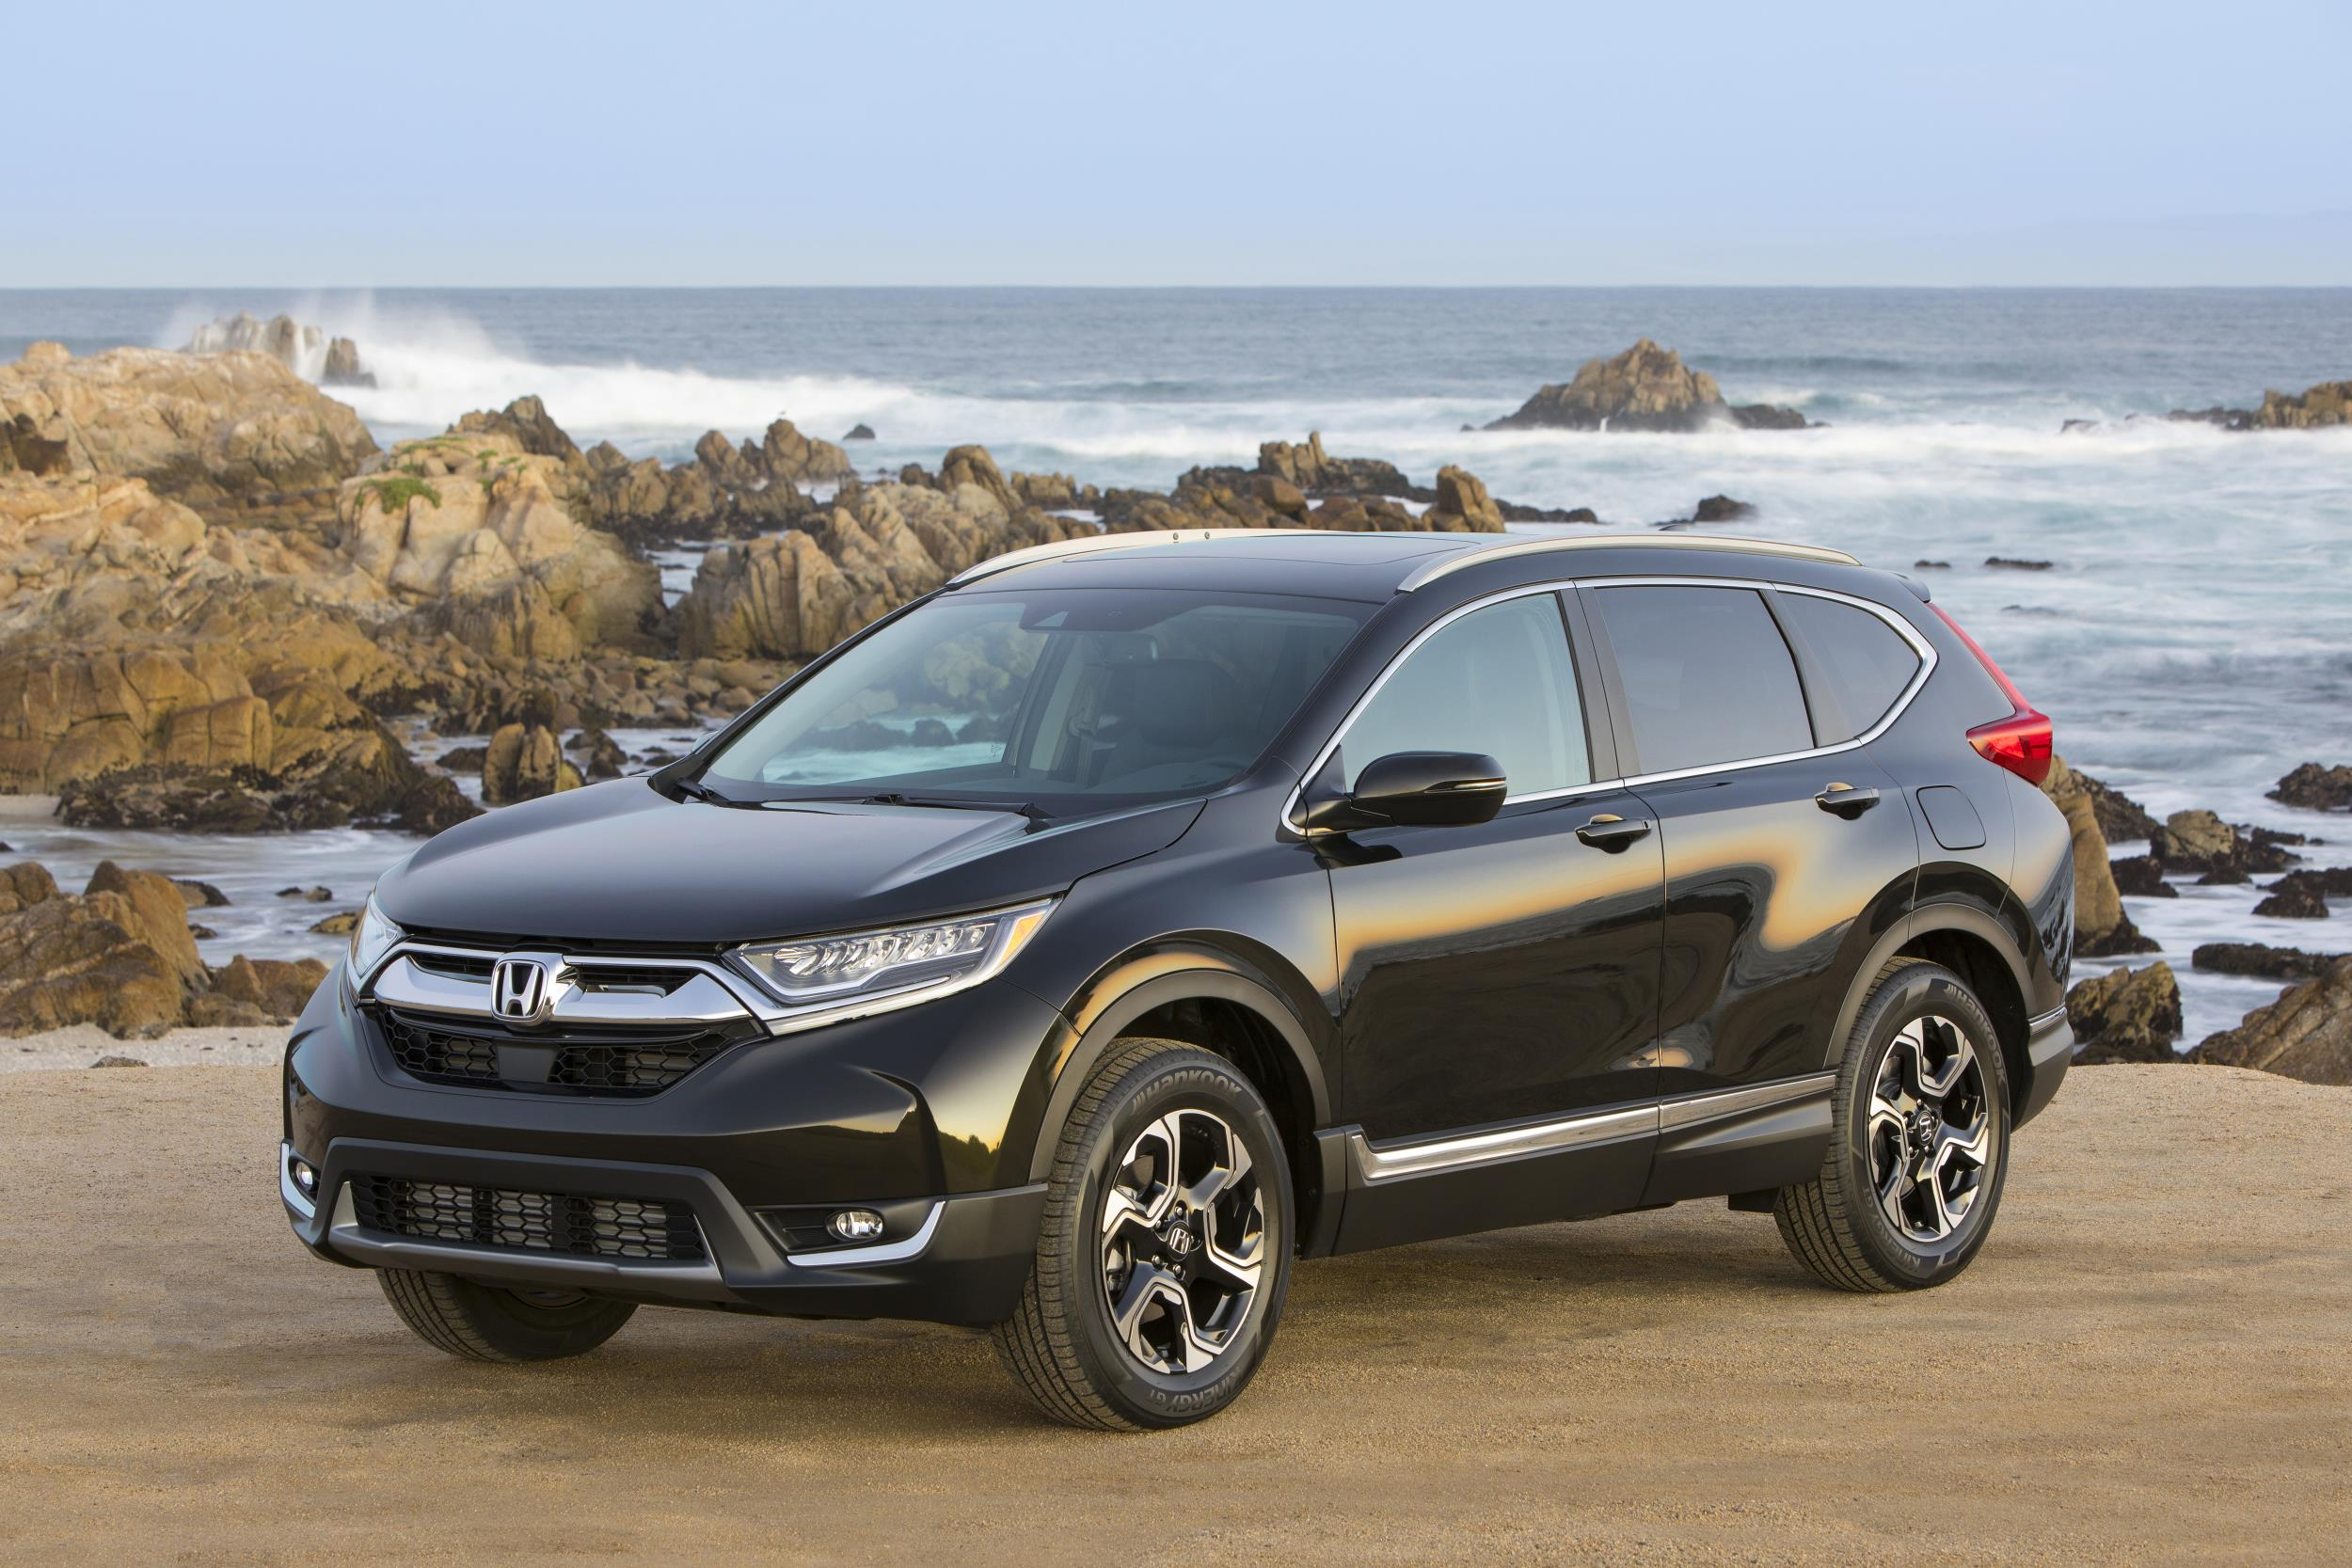 8 Honda CR-V Top-10 Best-selling Vehicles in the USA to date for 2017